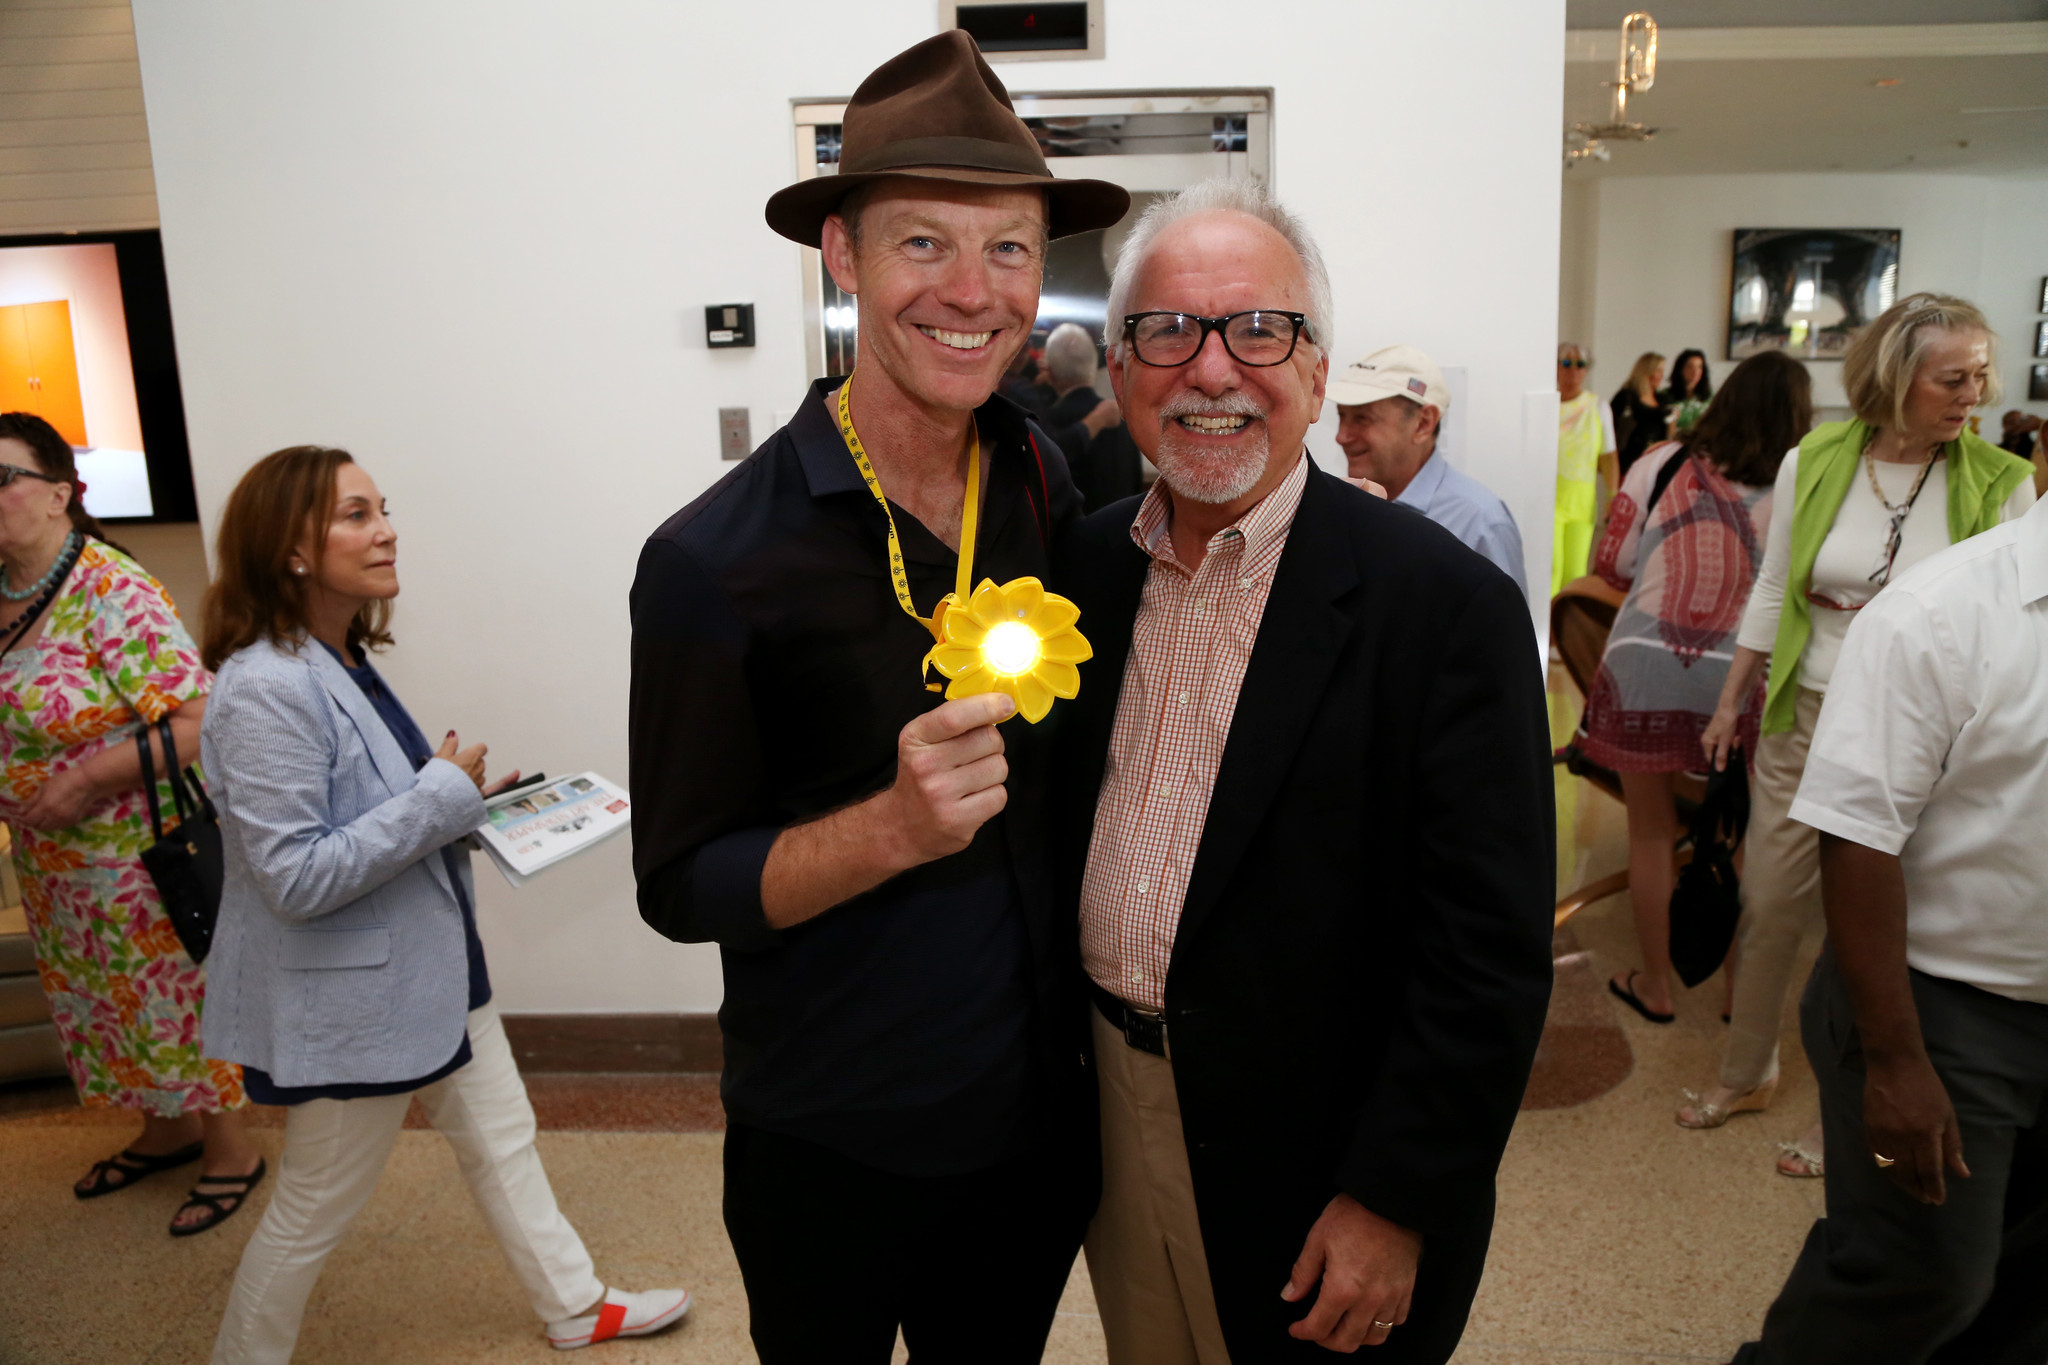 PHOTOS: The fashionistas of Art Basel - Robin Hill and John Hanhardt